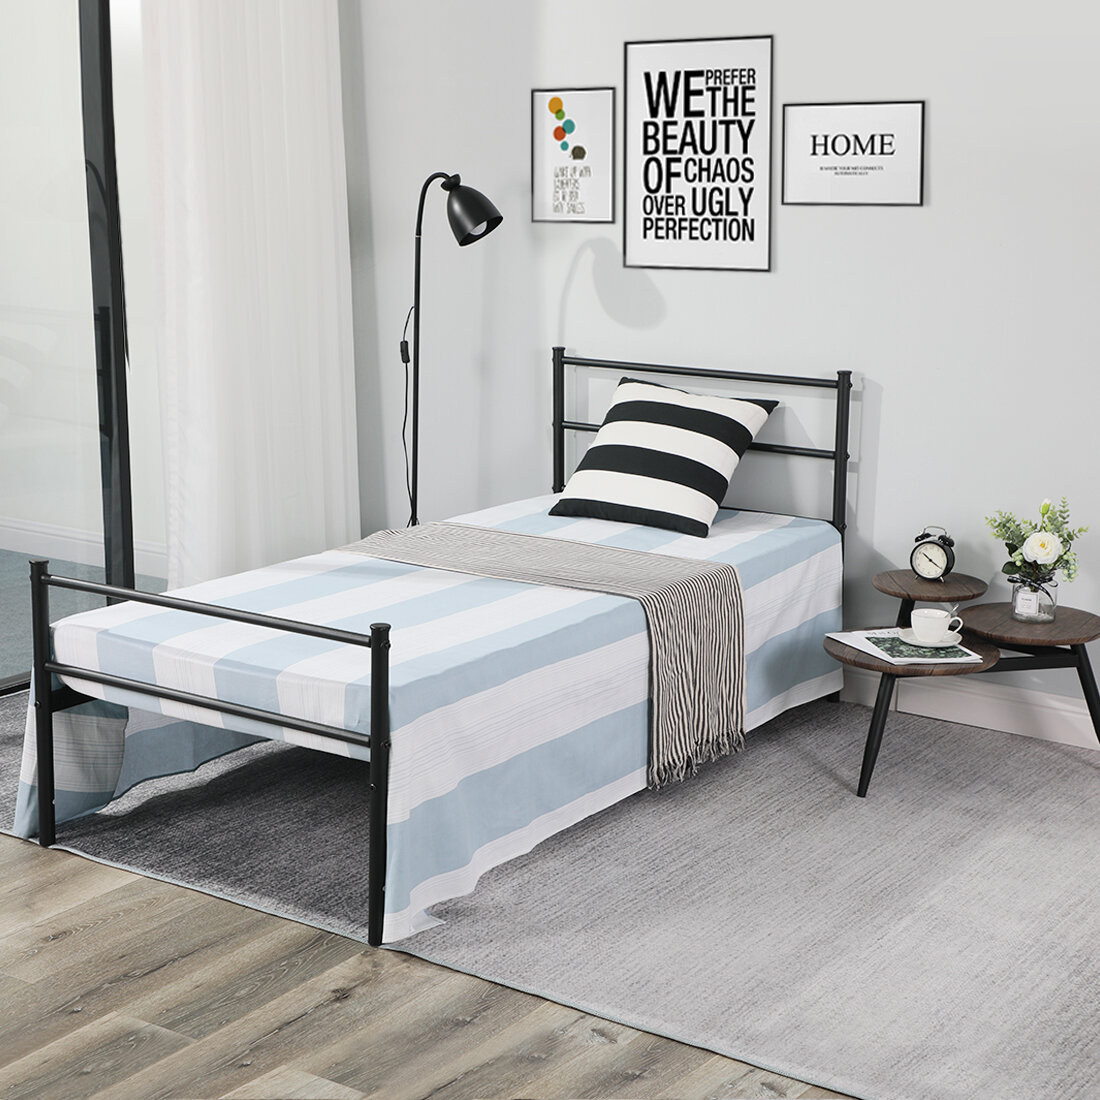 High Profile Tall Bed Frames Free Shipping Over 35 Wayfair